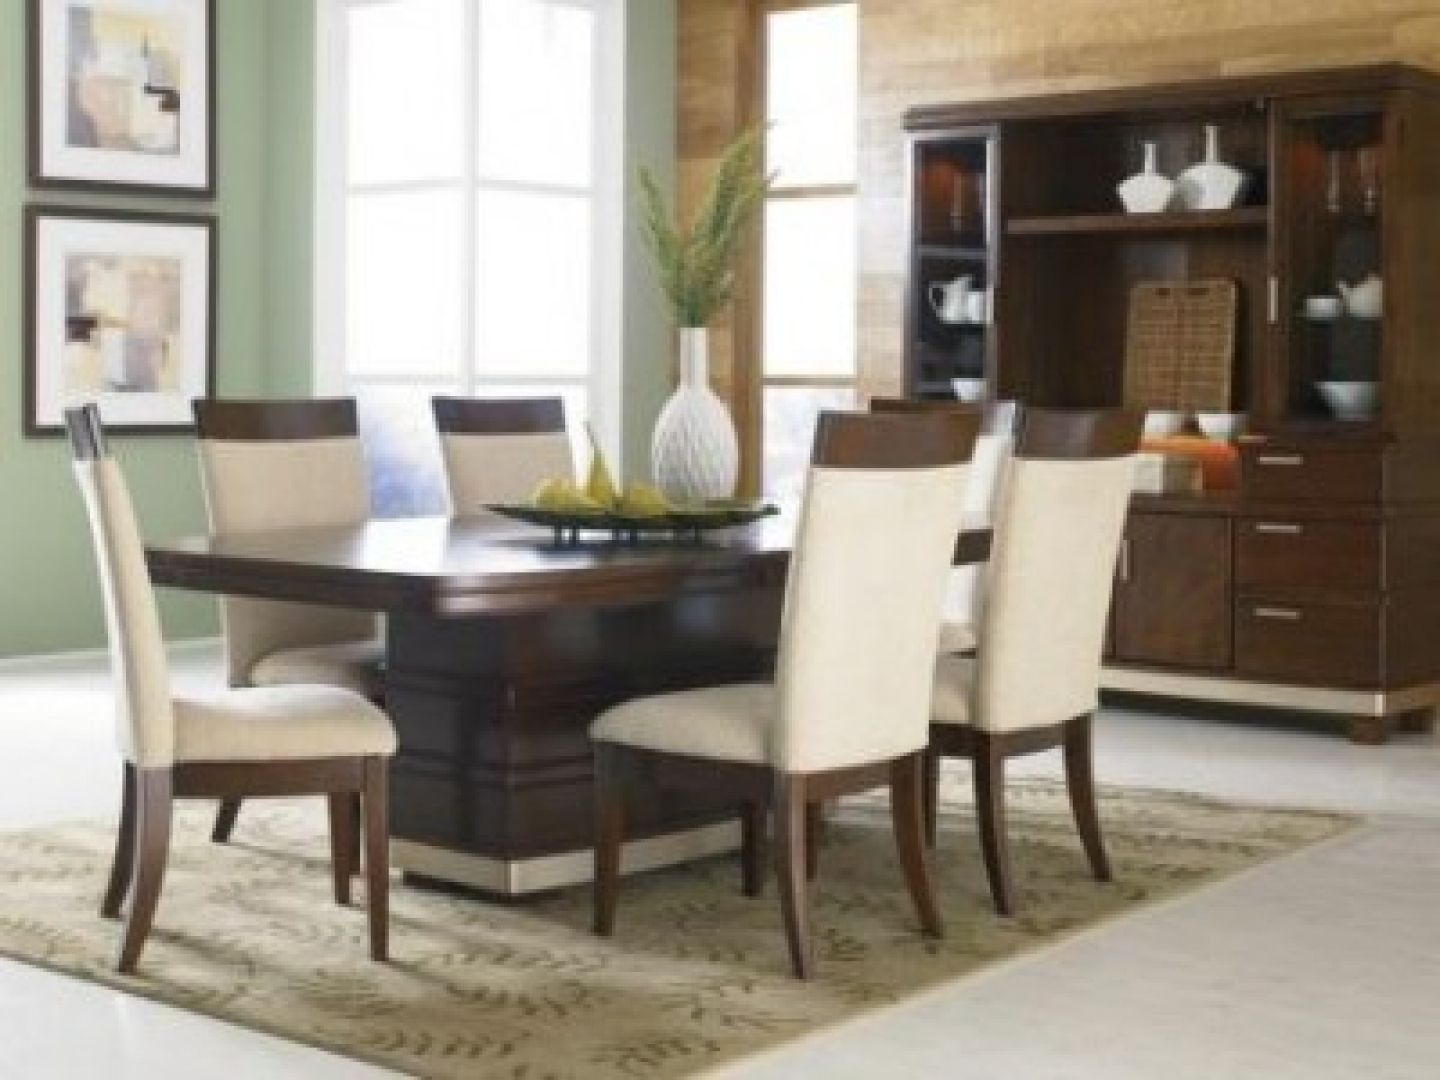 Contemporary Dining Room Furniture Sets Interesting Dining Room Table Sets  Expandable Dining Table Sets For The Sake Design Inspiration